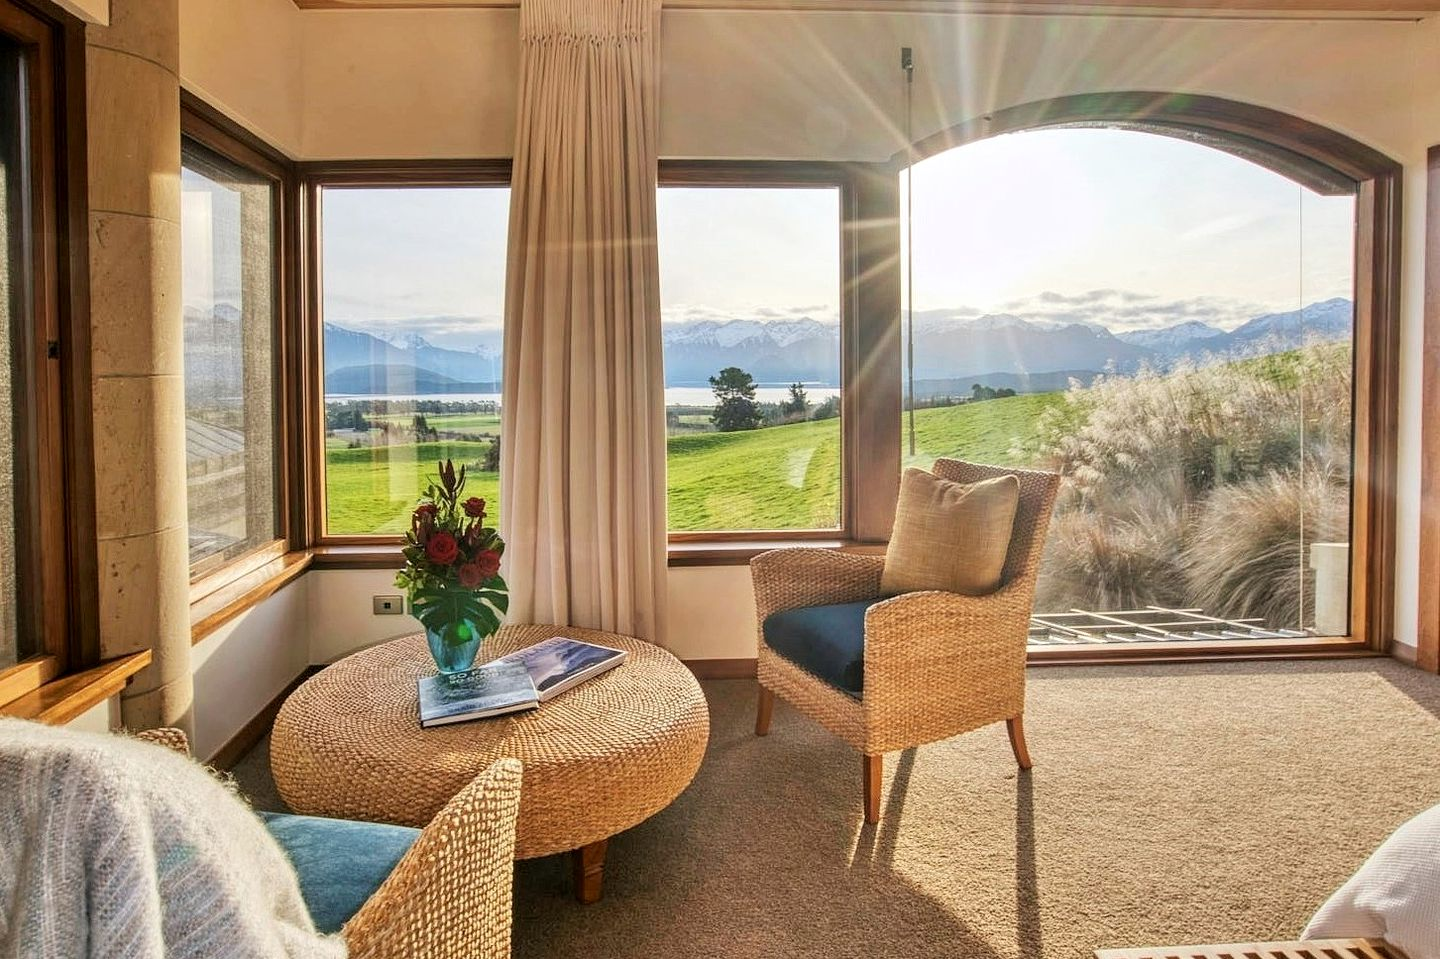 This Manapouri accommodation is ideal for romantic getaways, South Island